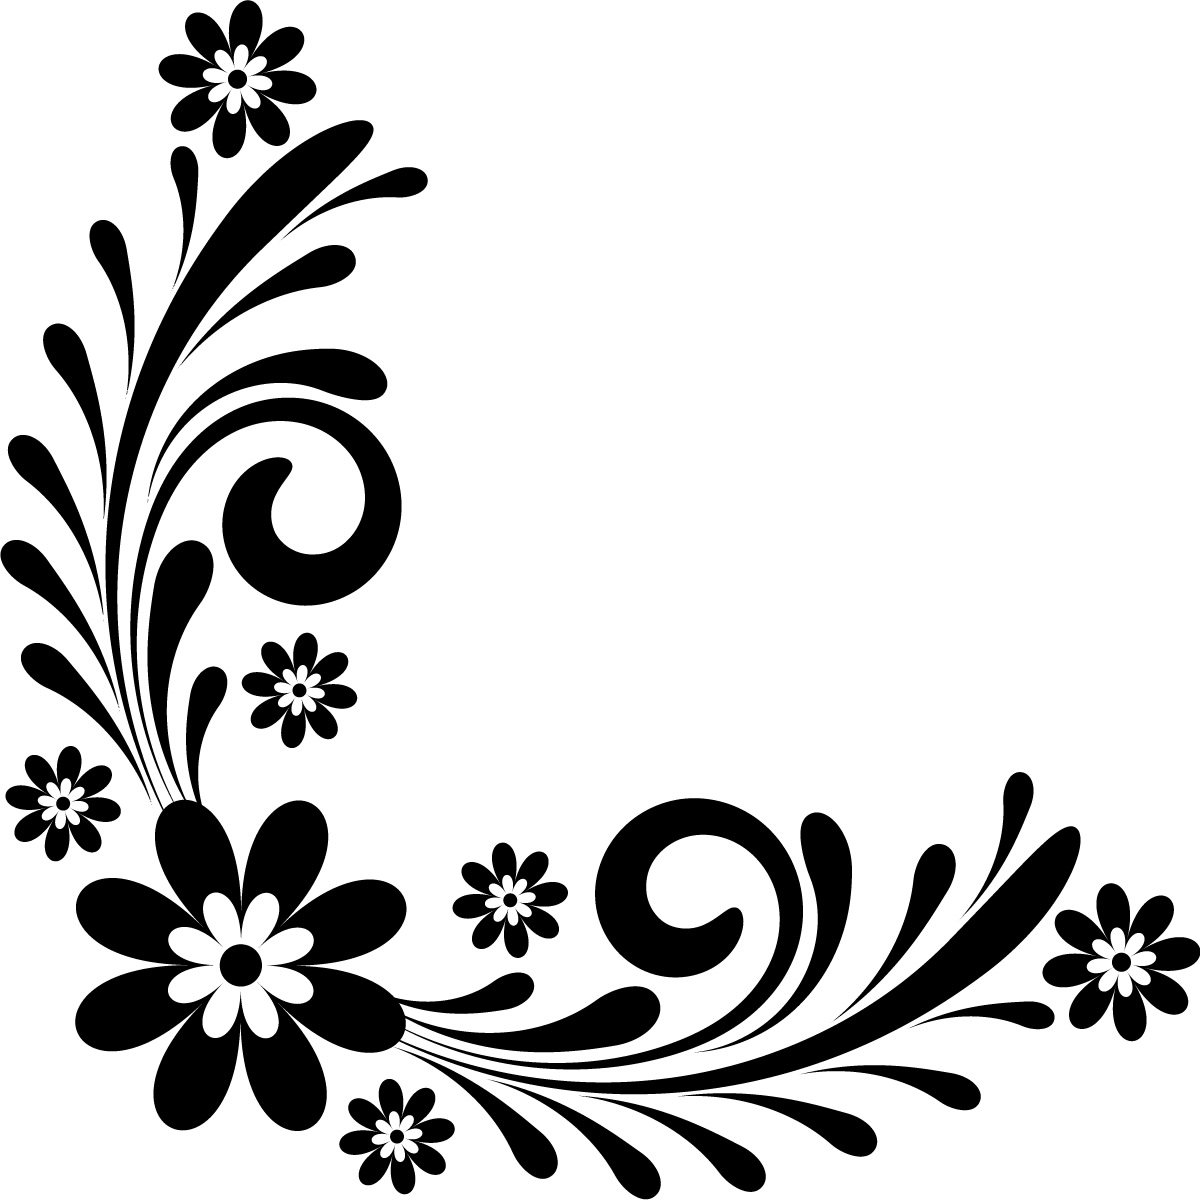 Page Border Designs Flowers Black And White - Cliparts.co